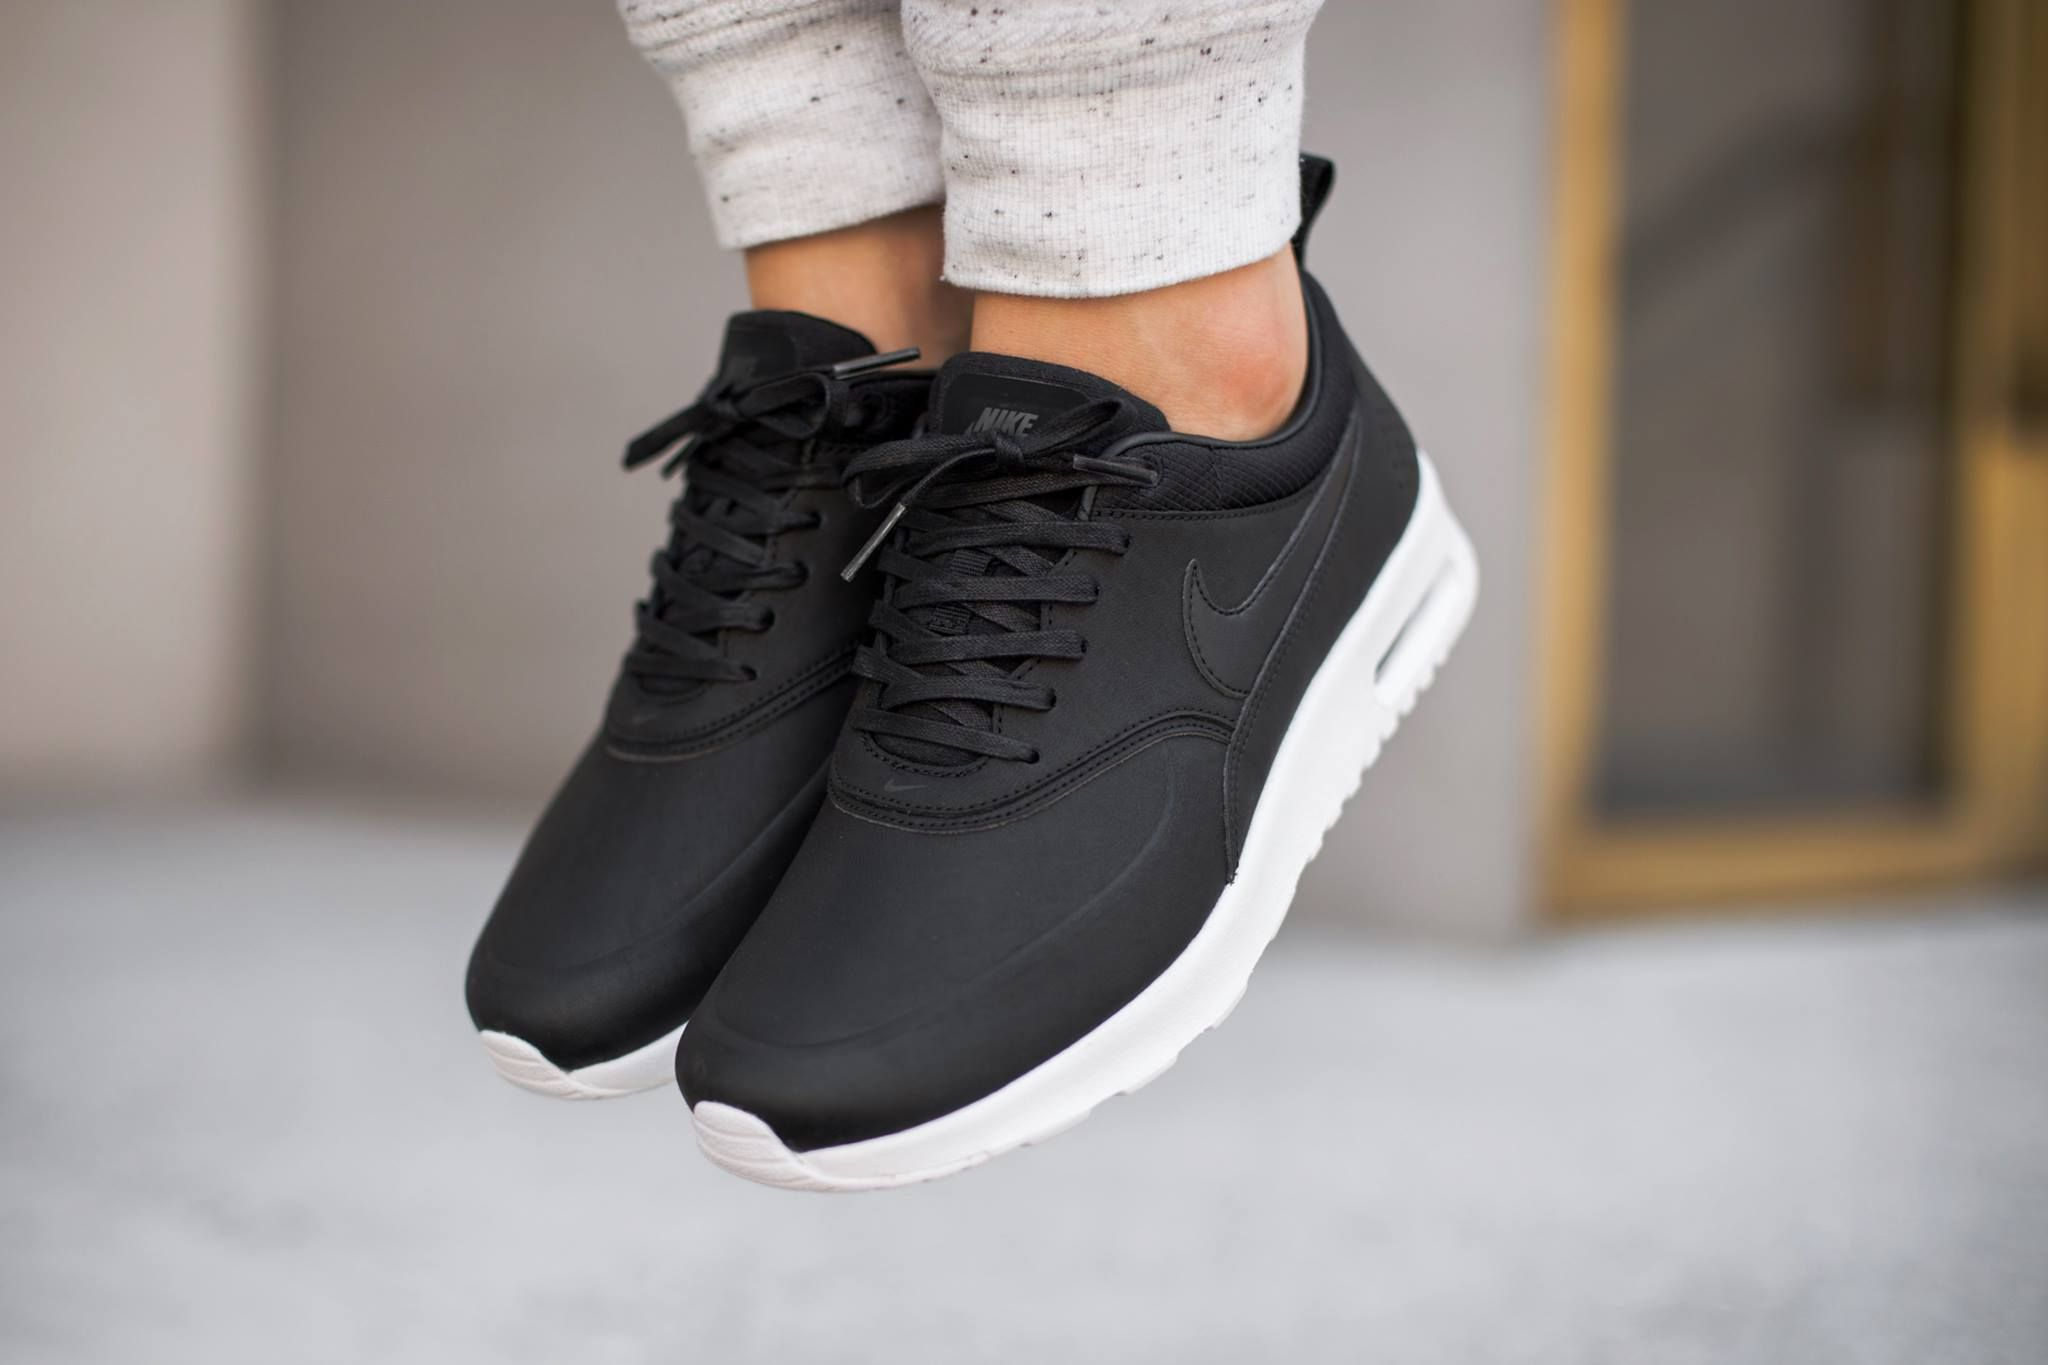 bea3b5fccc0 NIKE Air Max Thea | Footwork. in 2019 | Leather sneakers, Nike shoes ...